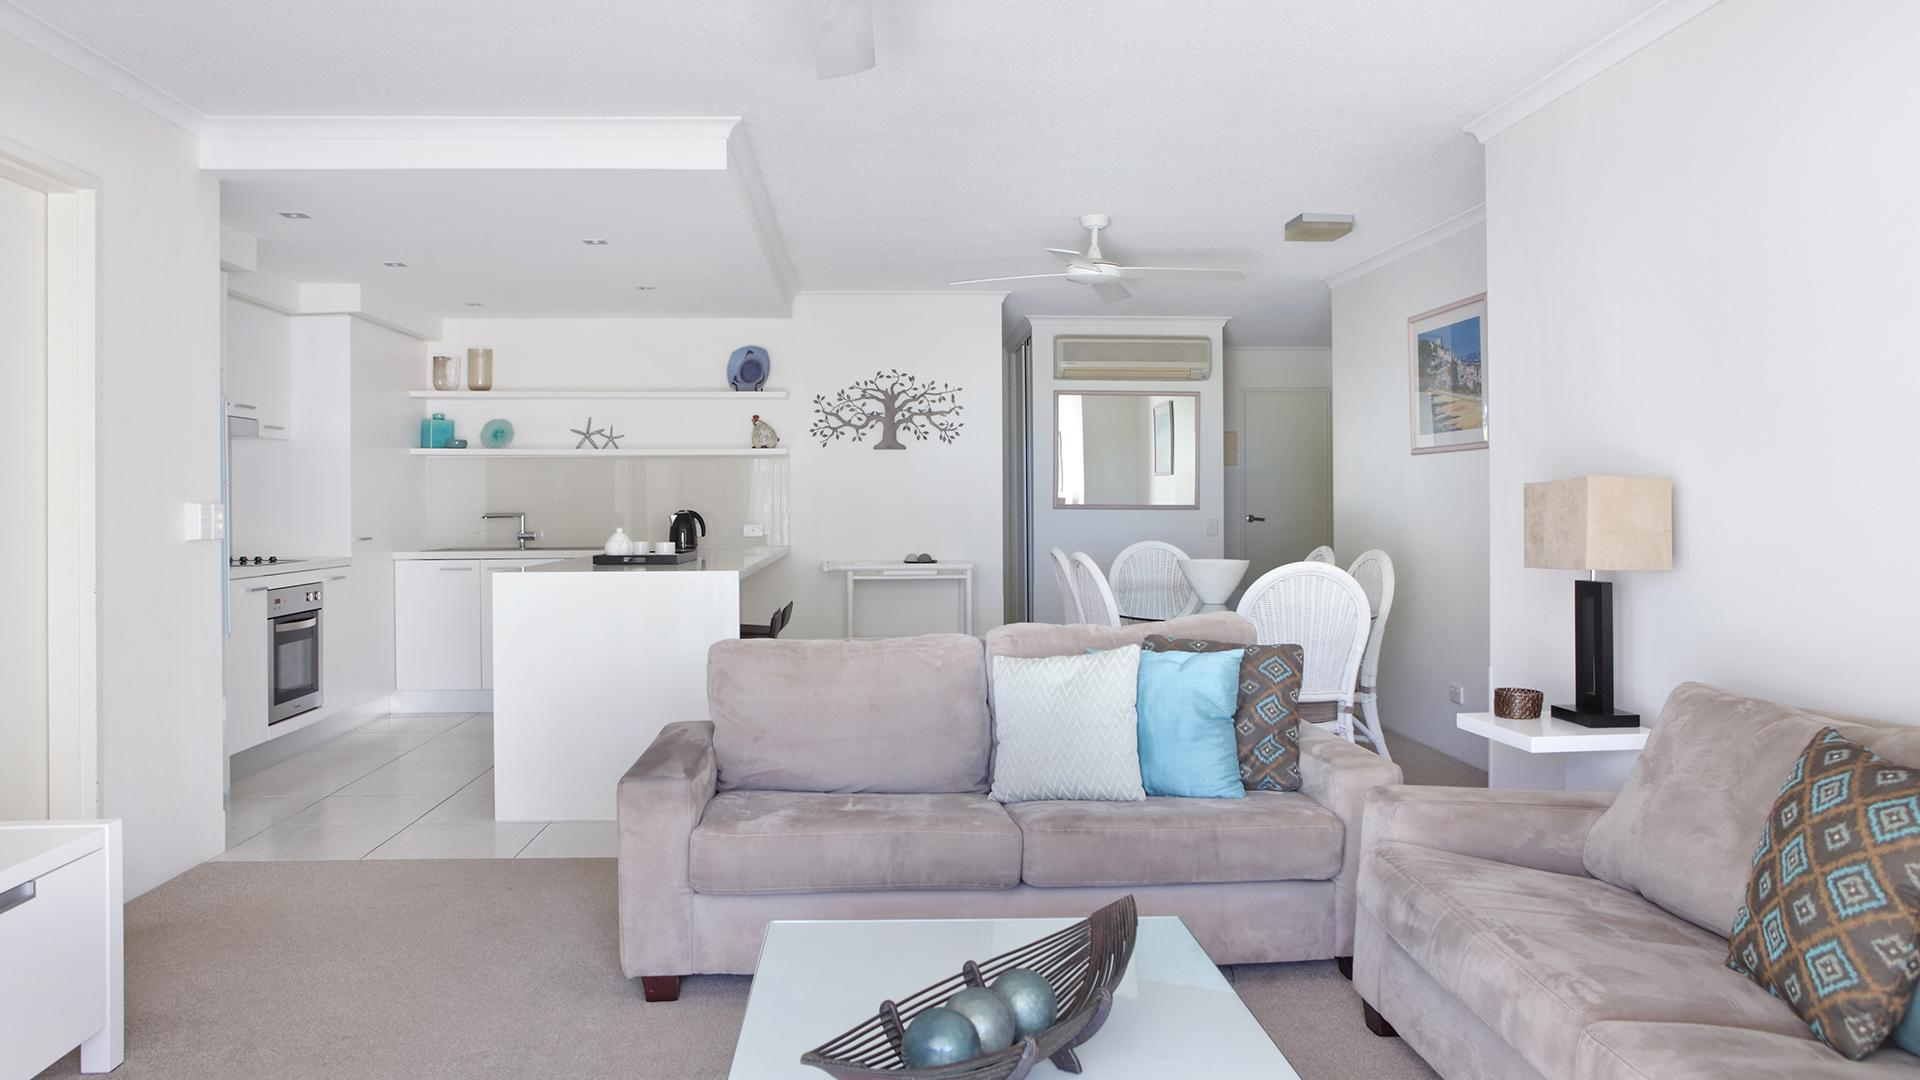 Three-Bedroom Apartment  image 1 at Macquarie Lodge Apartments by Noosa Shire, Queensland, Australia